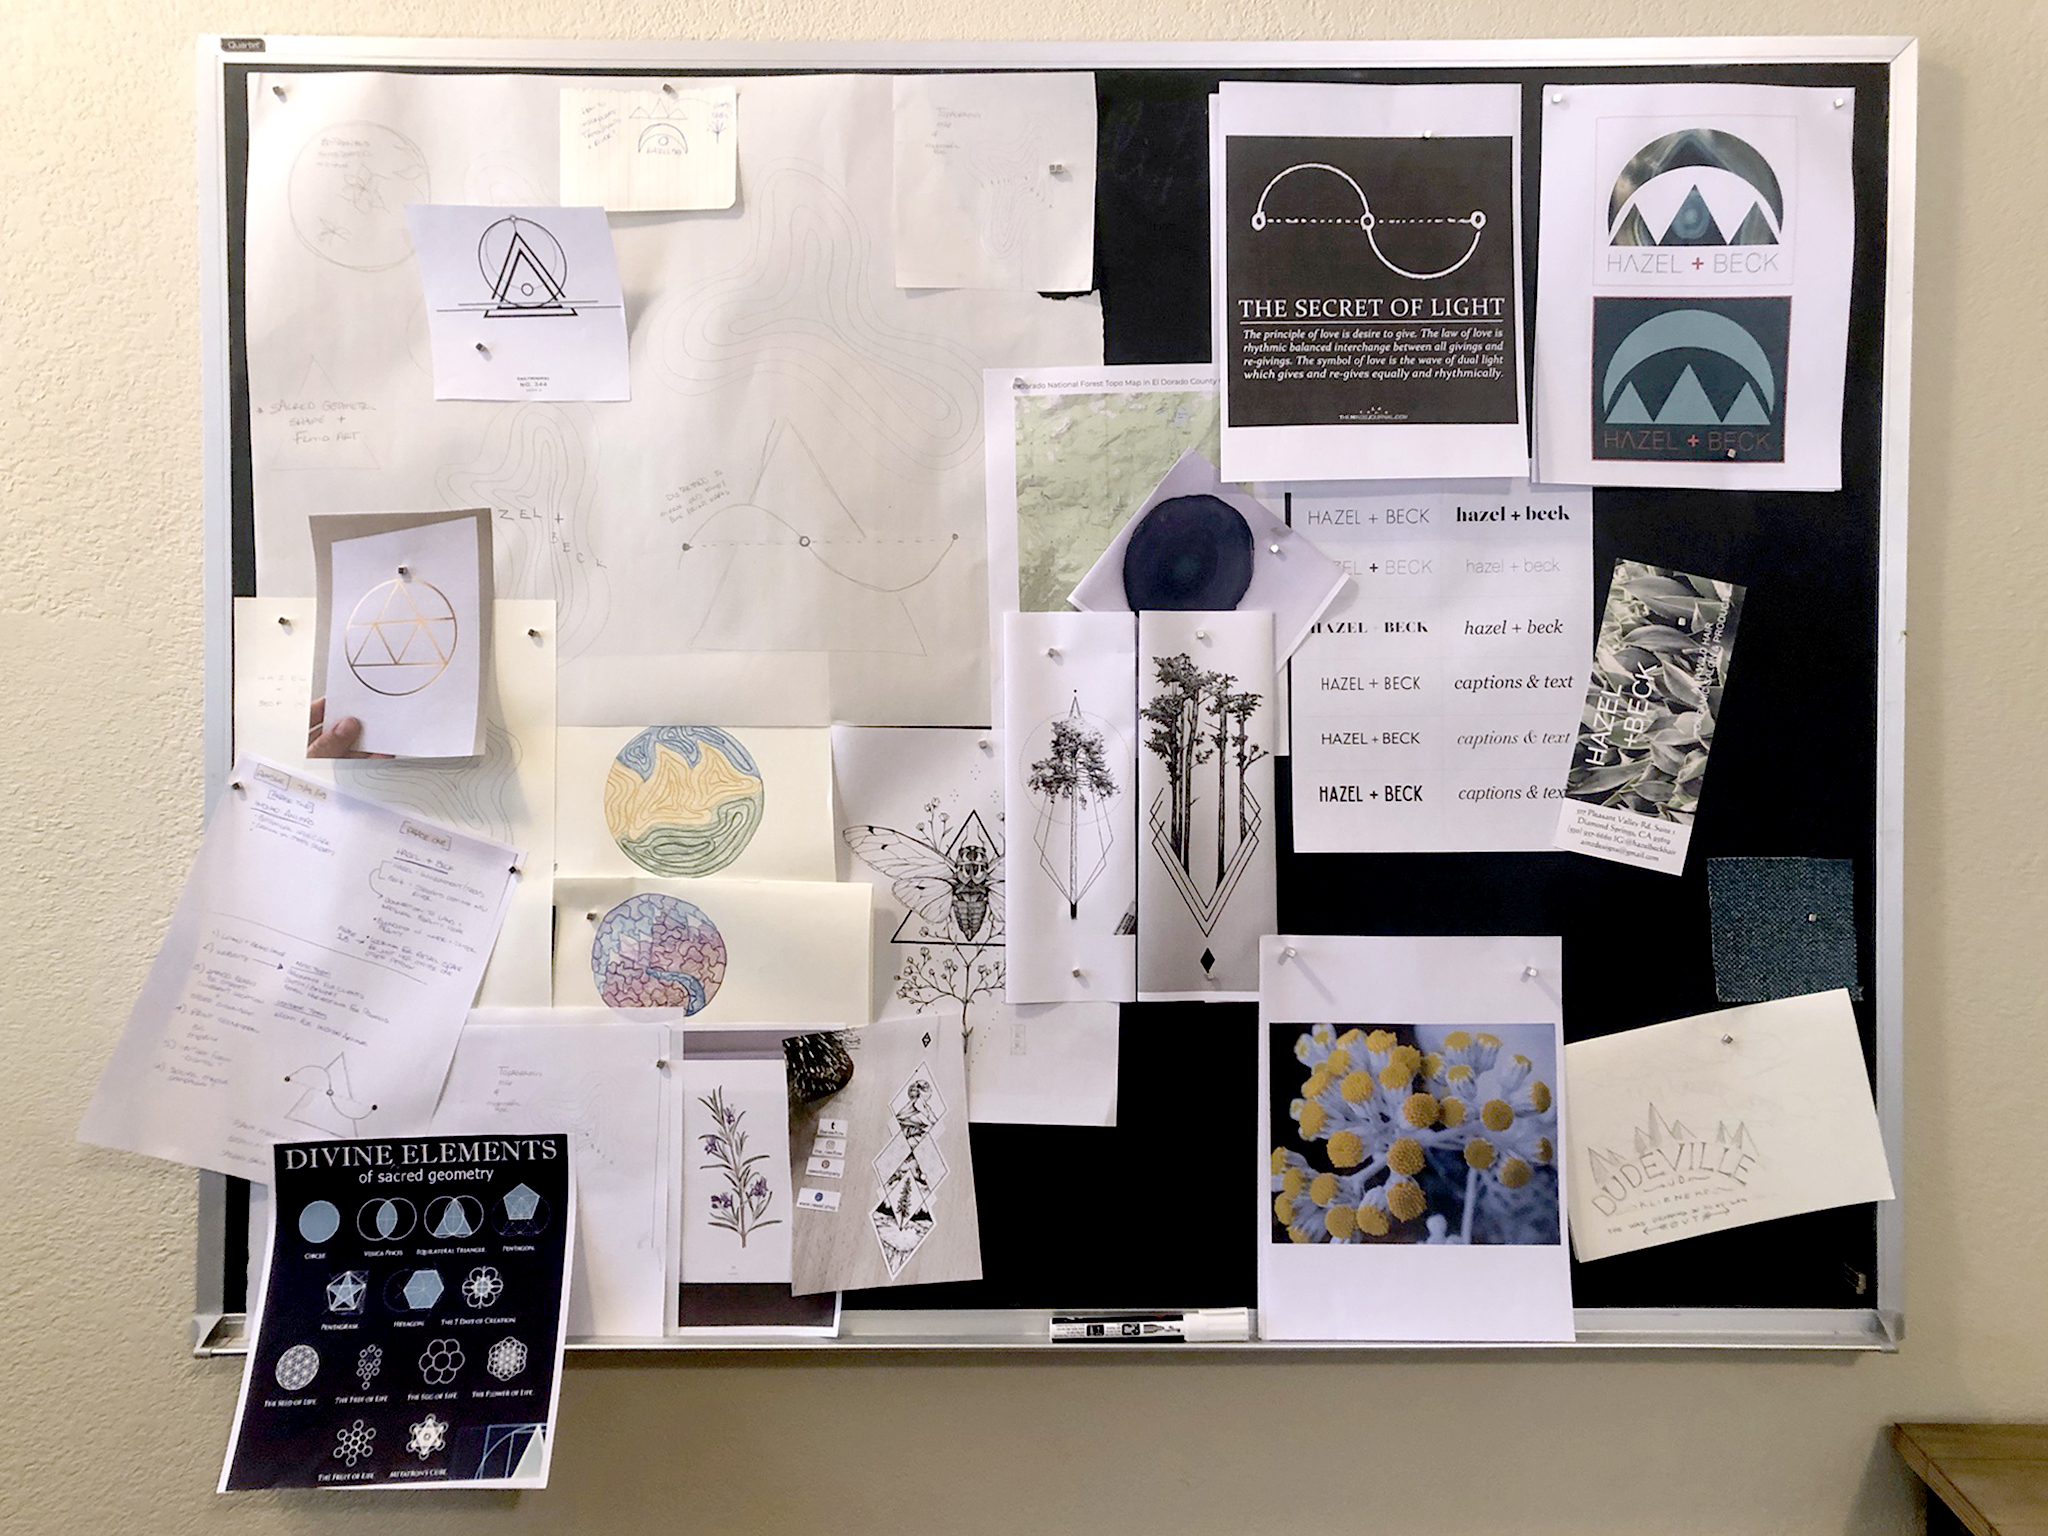 Photograph of our in studio pinboard when we were working on the logo designs for Hazel + Beck. Thank you to the users of Pinterest for the beautiful inspiration and for sharing their art with the world.